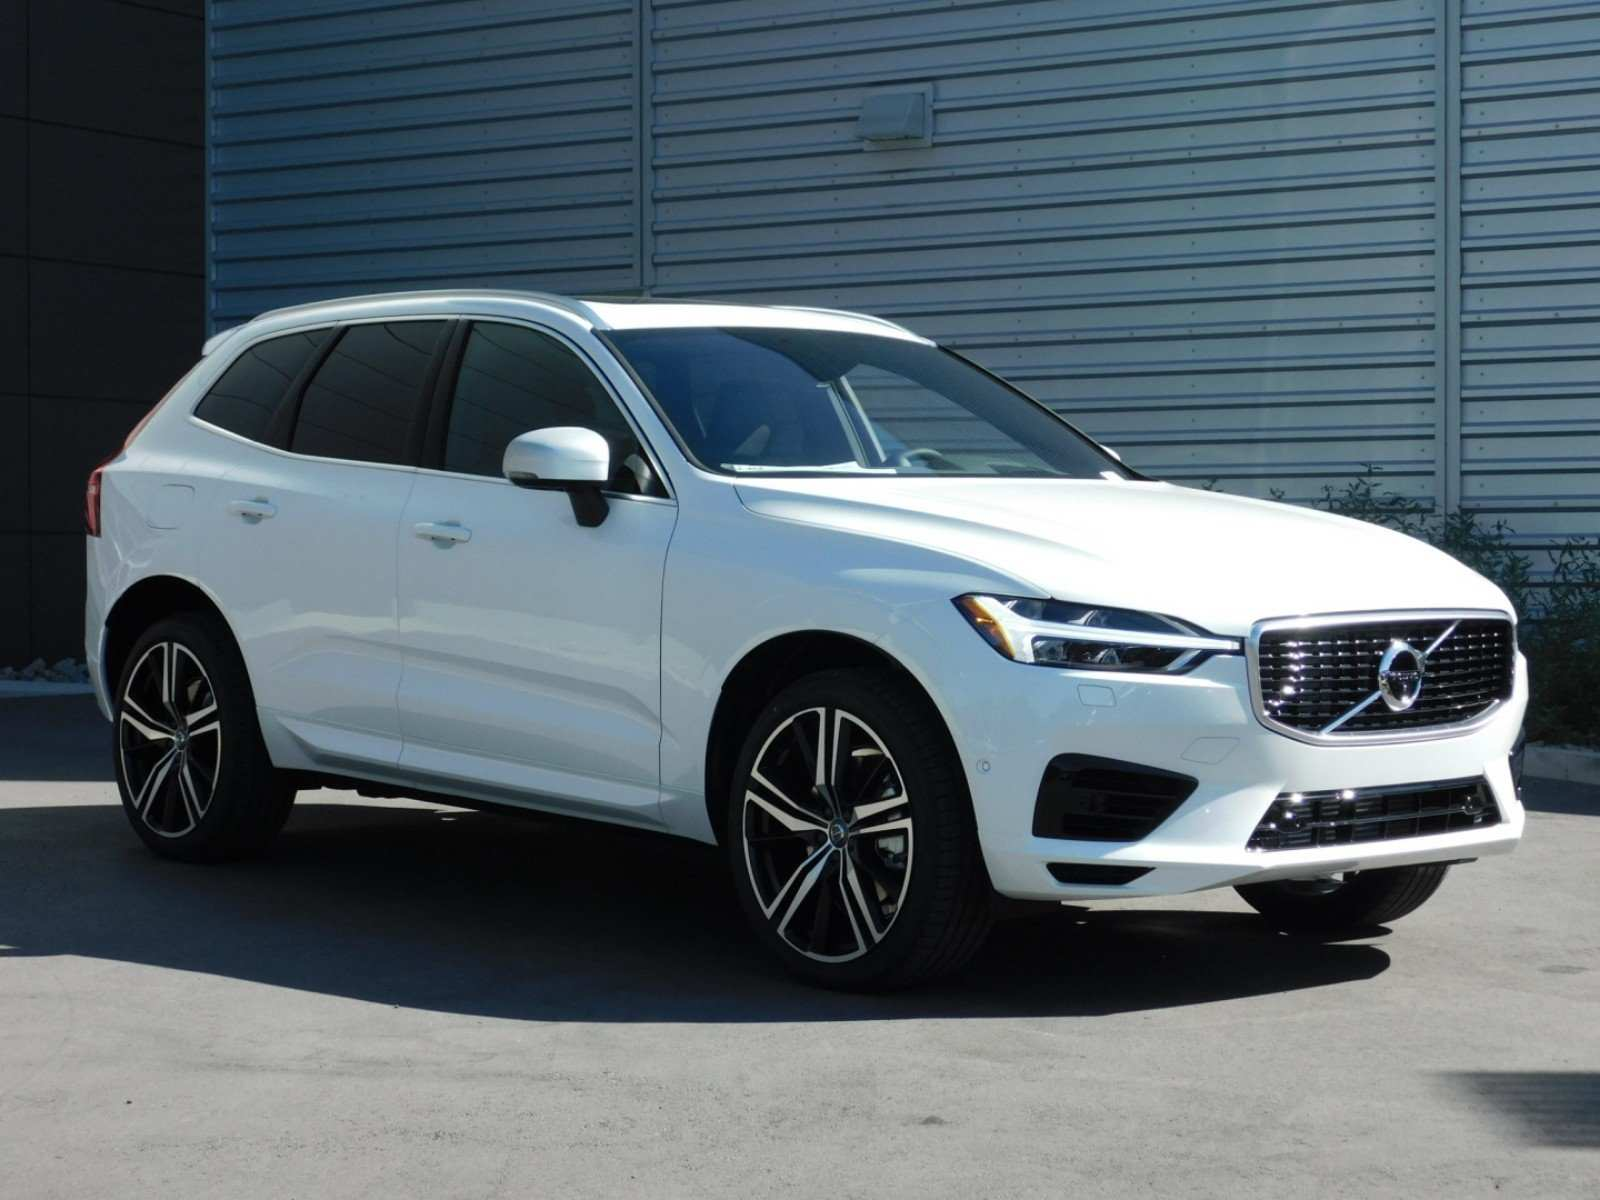 38 Concept of 2019 Volvo Xc60 Pricing for 2019 Volvo Xc60